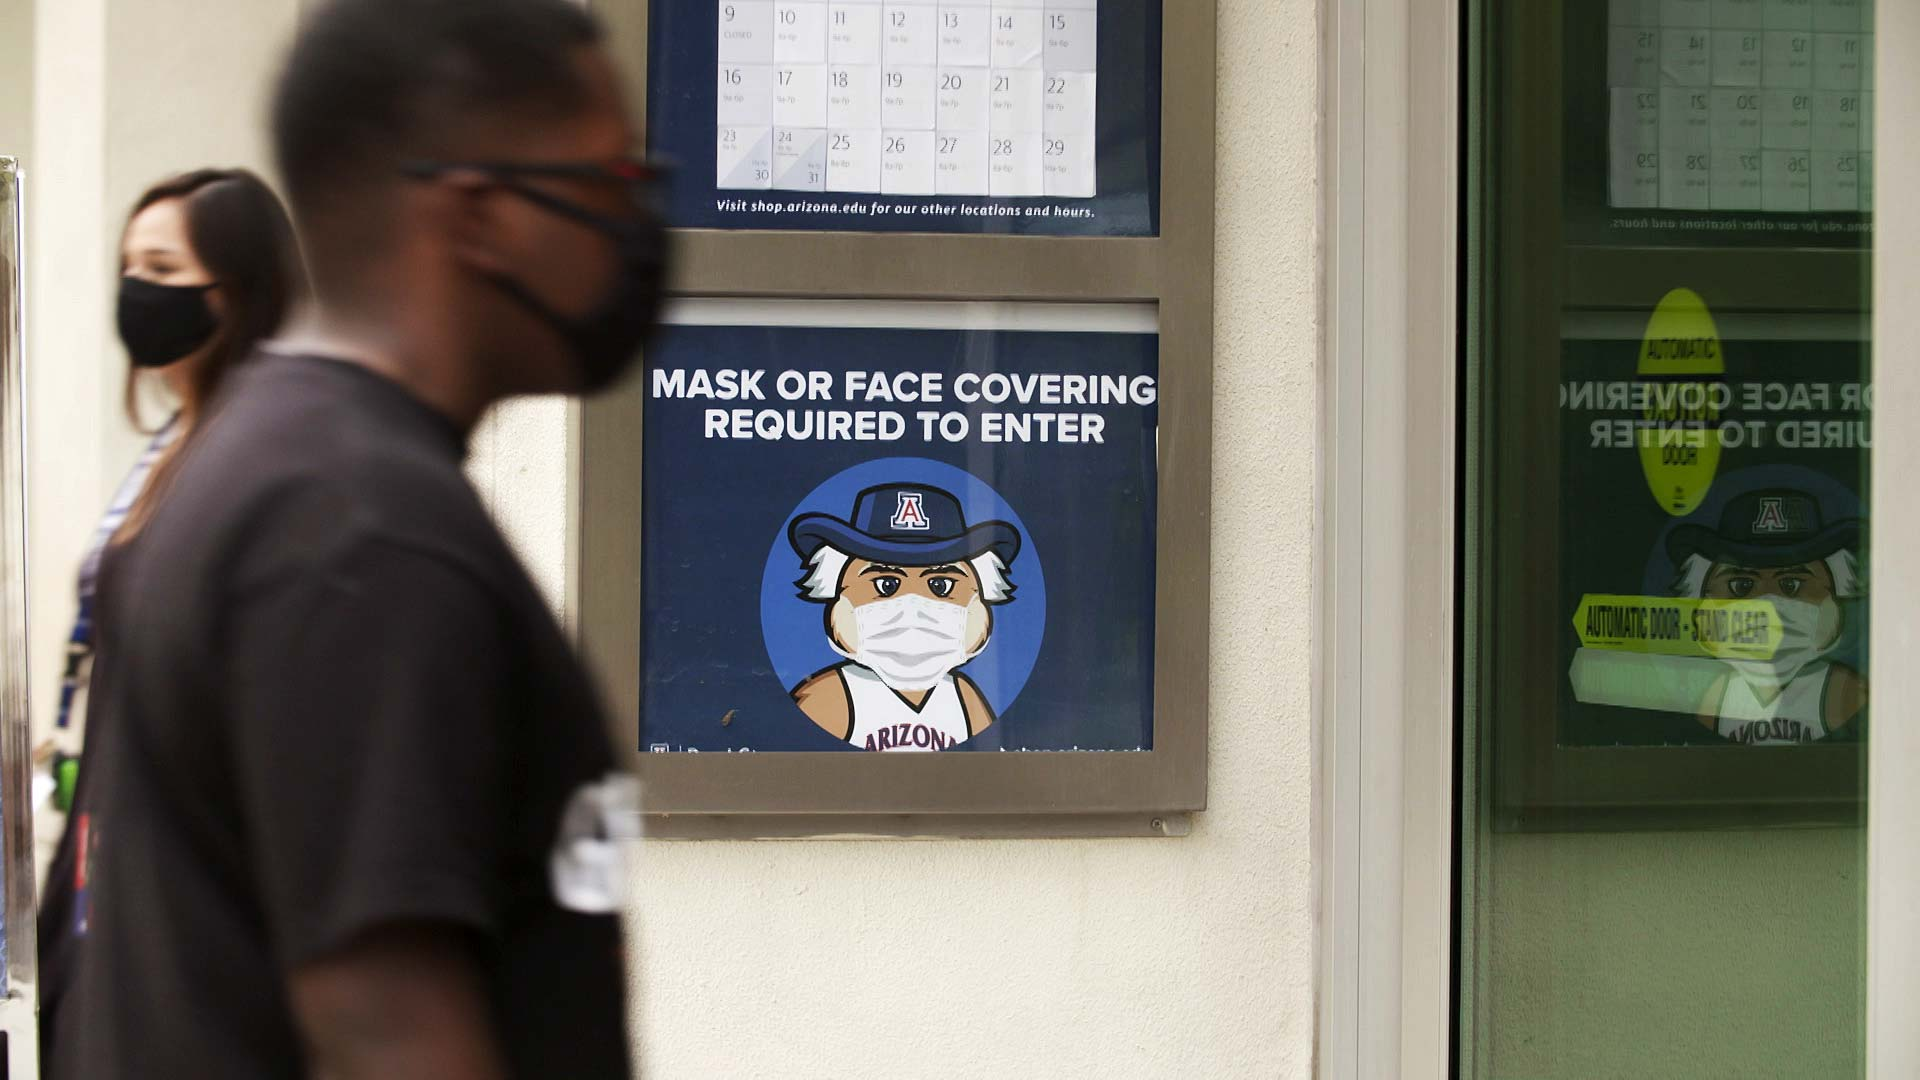 A sign outside of the University of Arizona bookstore reminds visitors that masks are required to enter.